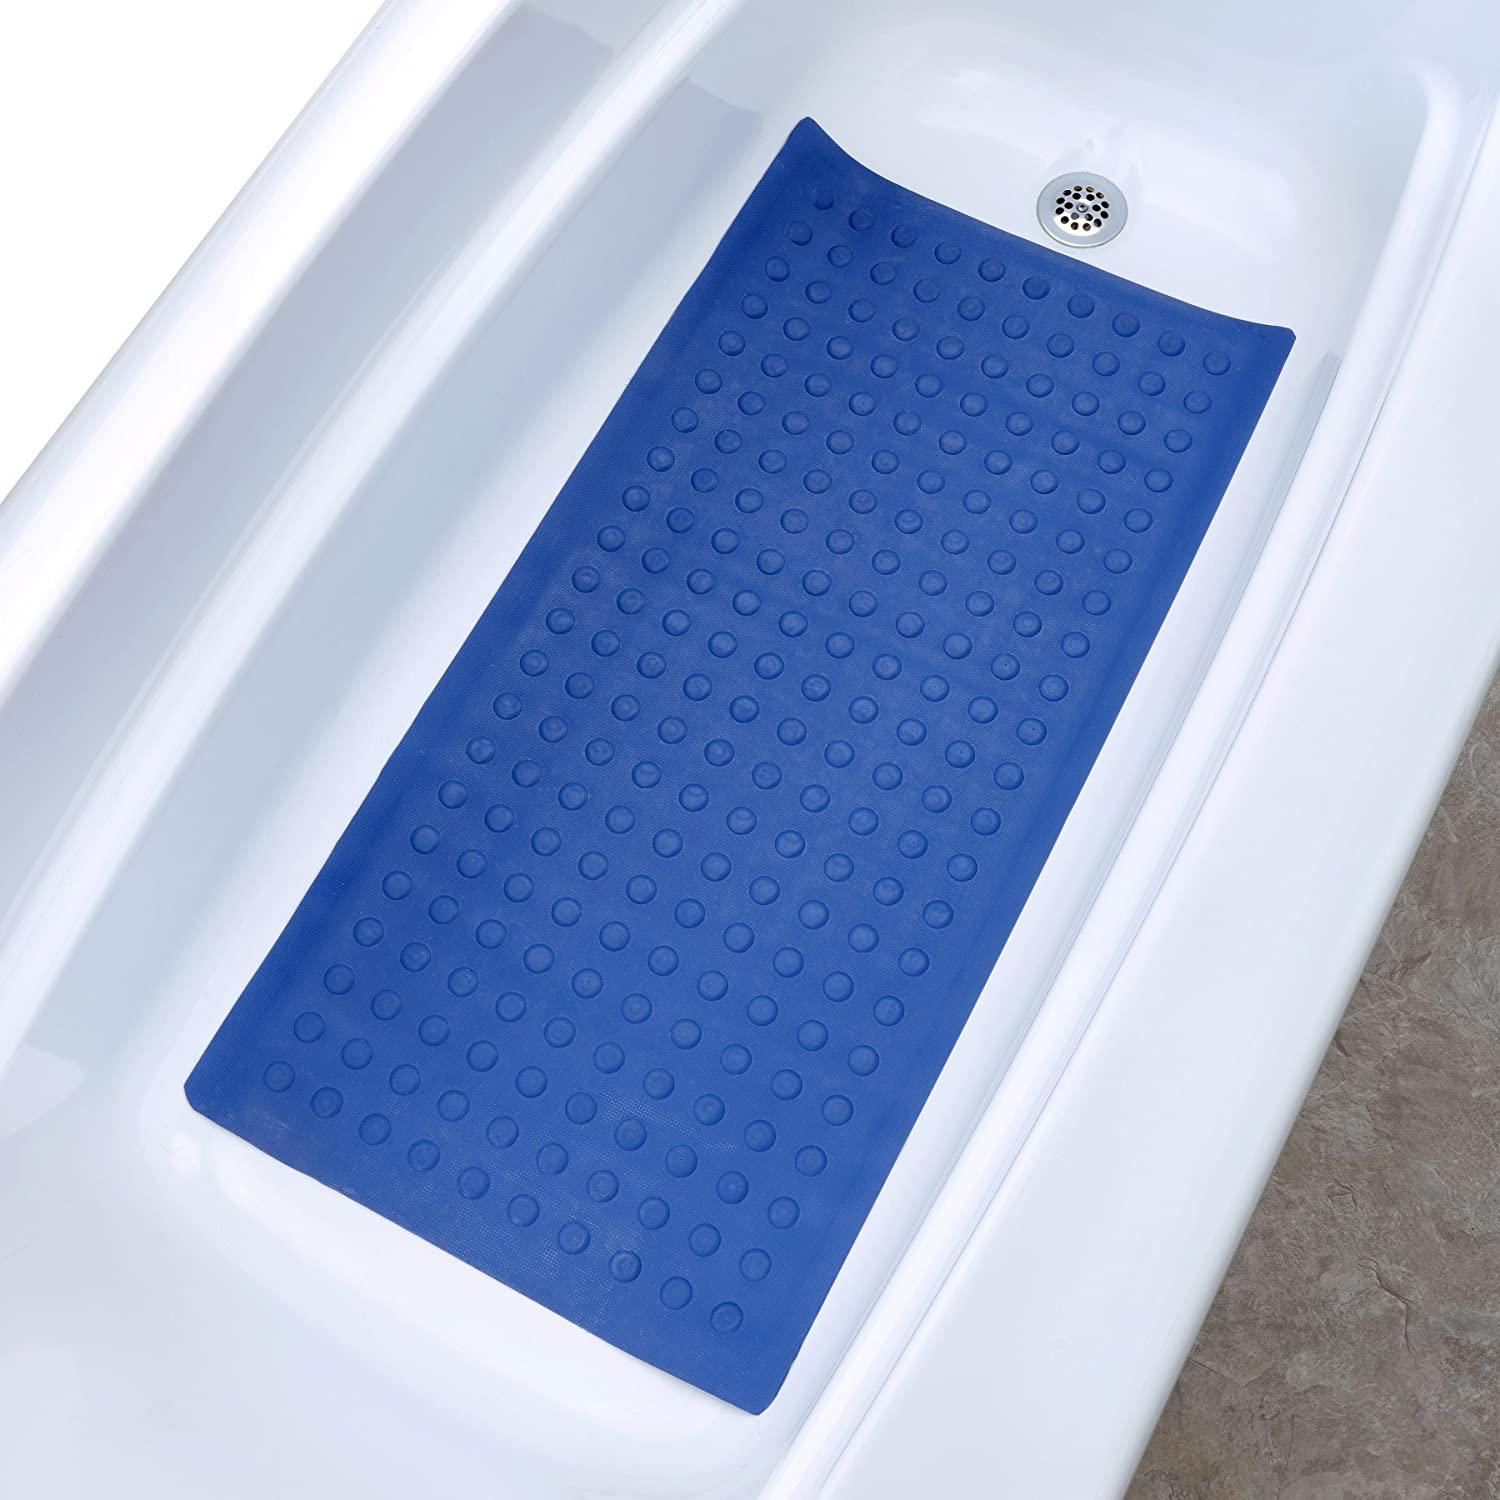 Amazon.com: SlipX Solutions Blue Extra Long Rubber Bath Safety Mat ...